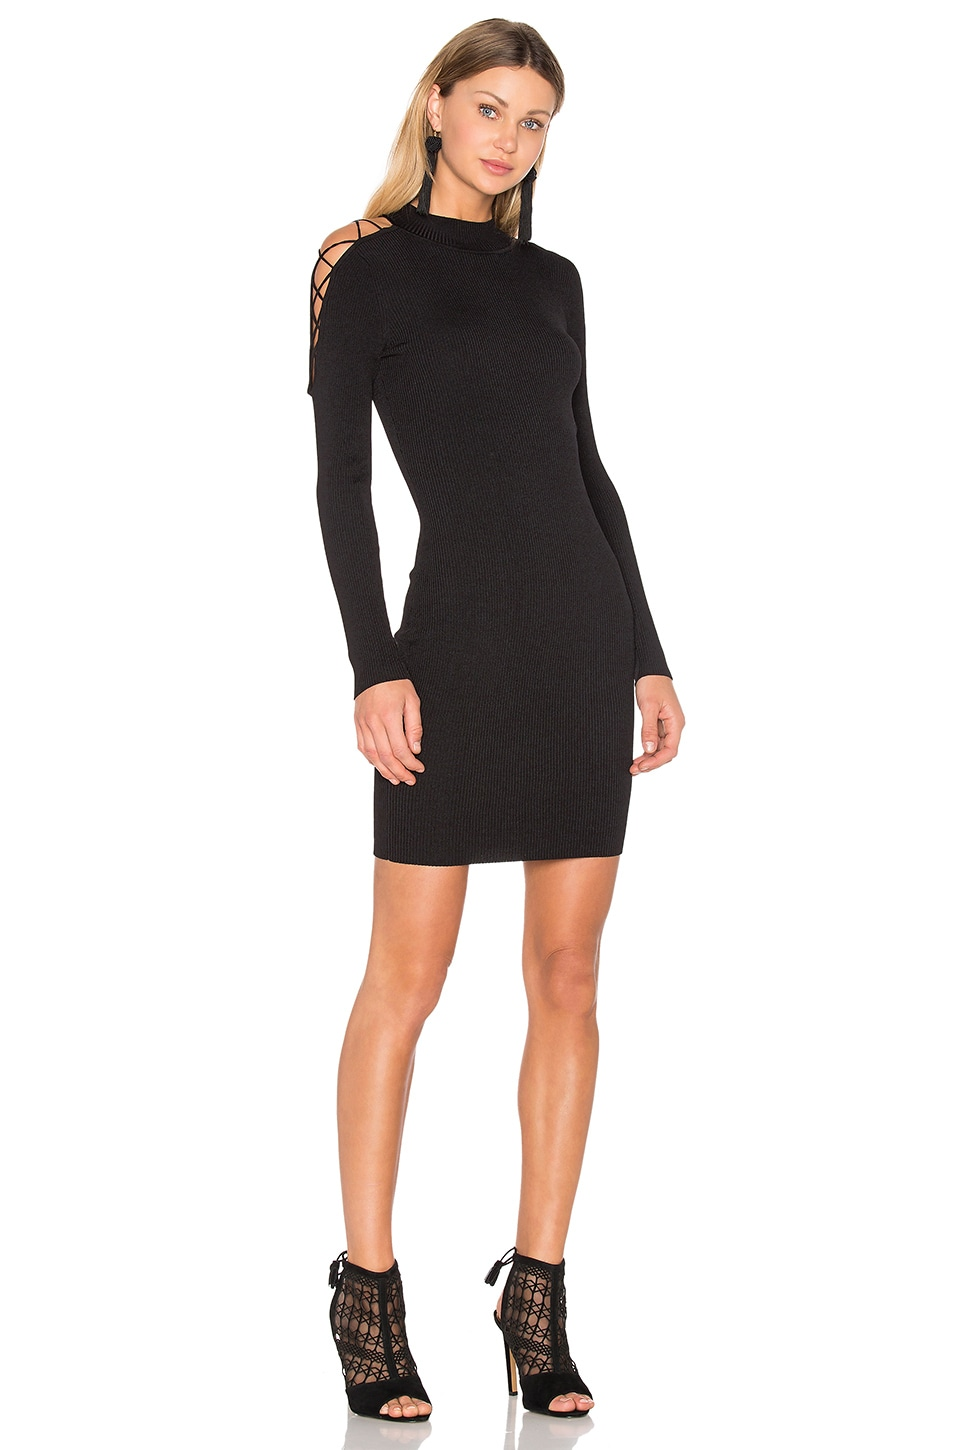 Irving Place Bodycon Dress by Central Park West